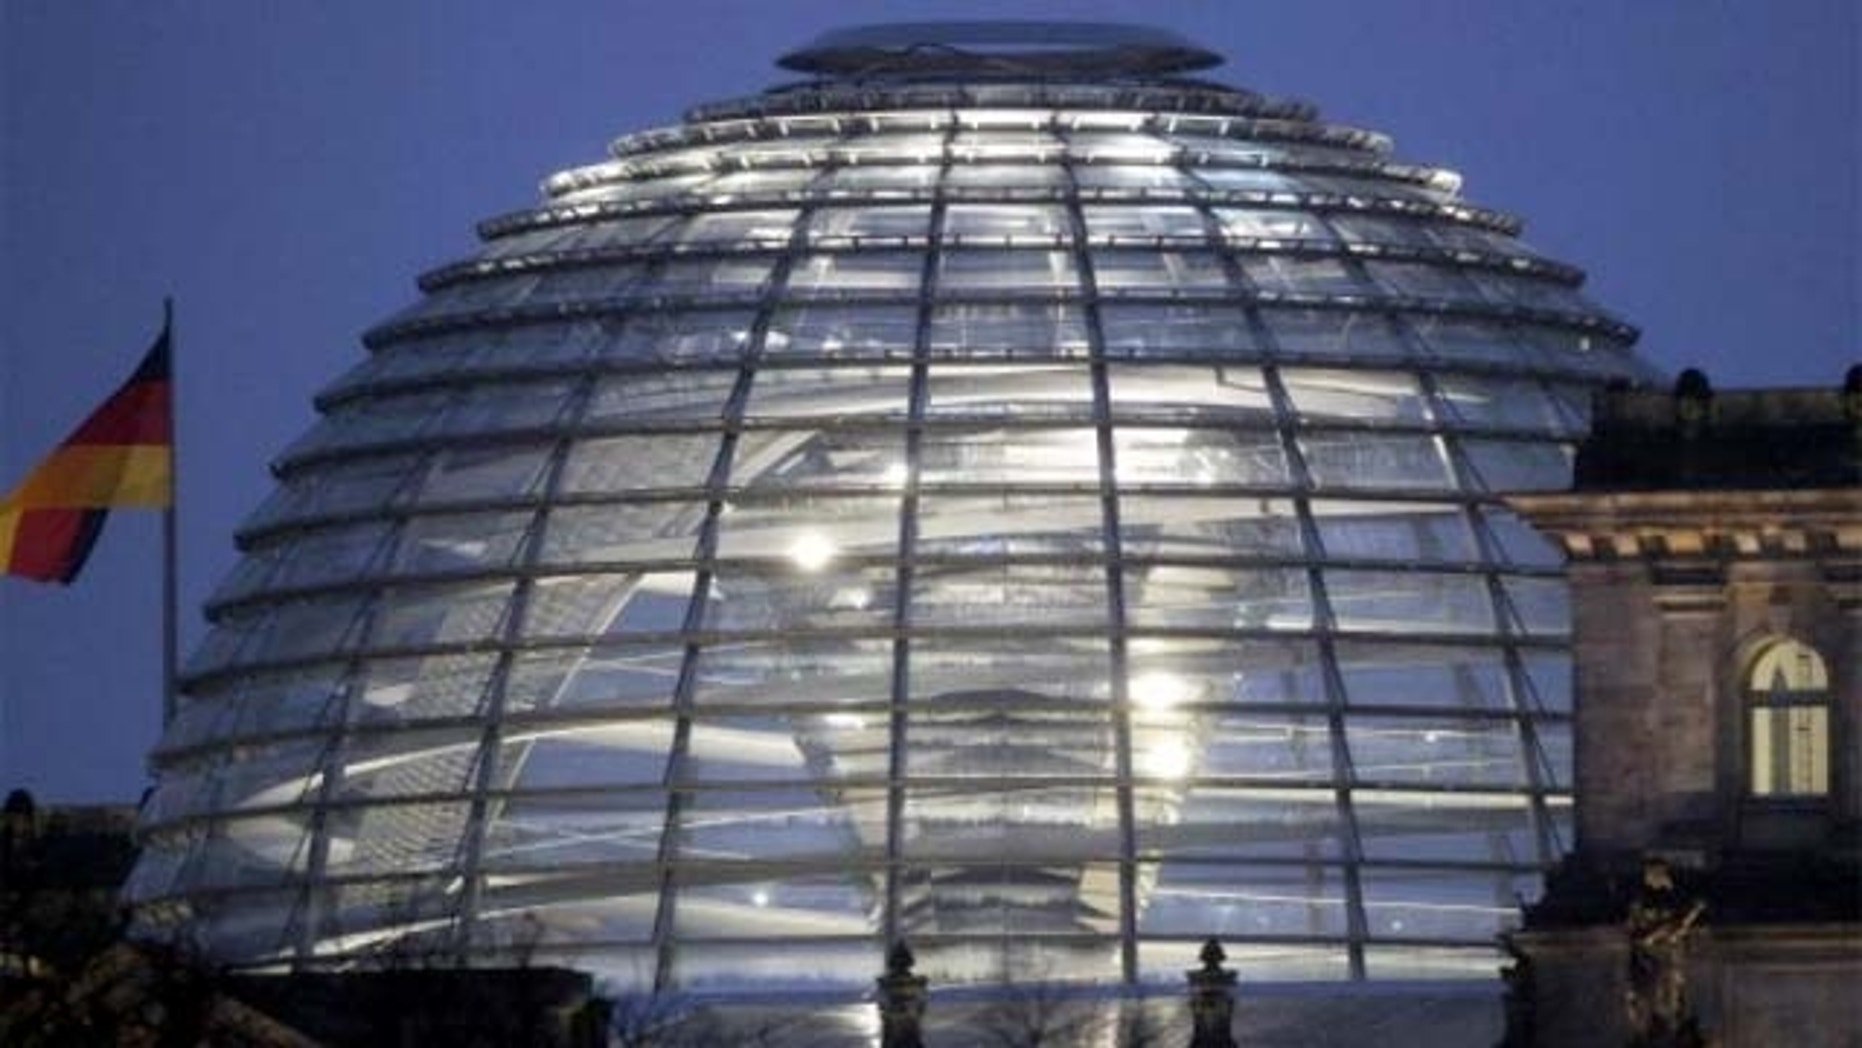 The dome of the Reichstag in Berlin, Germany.